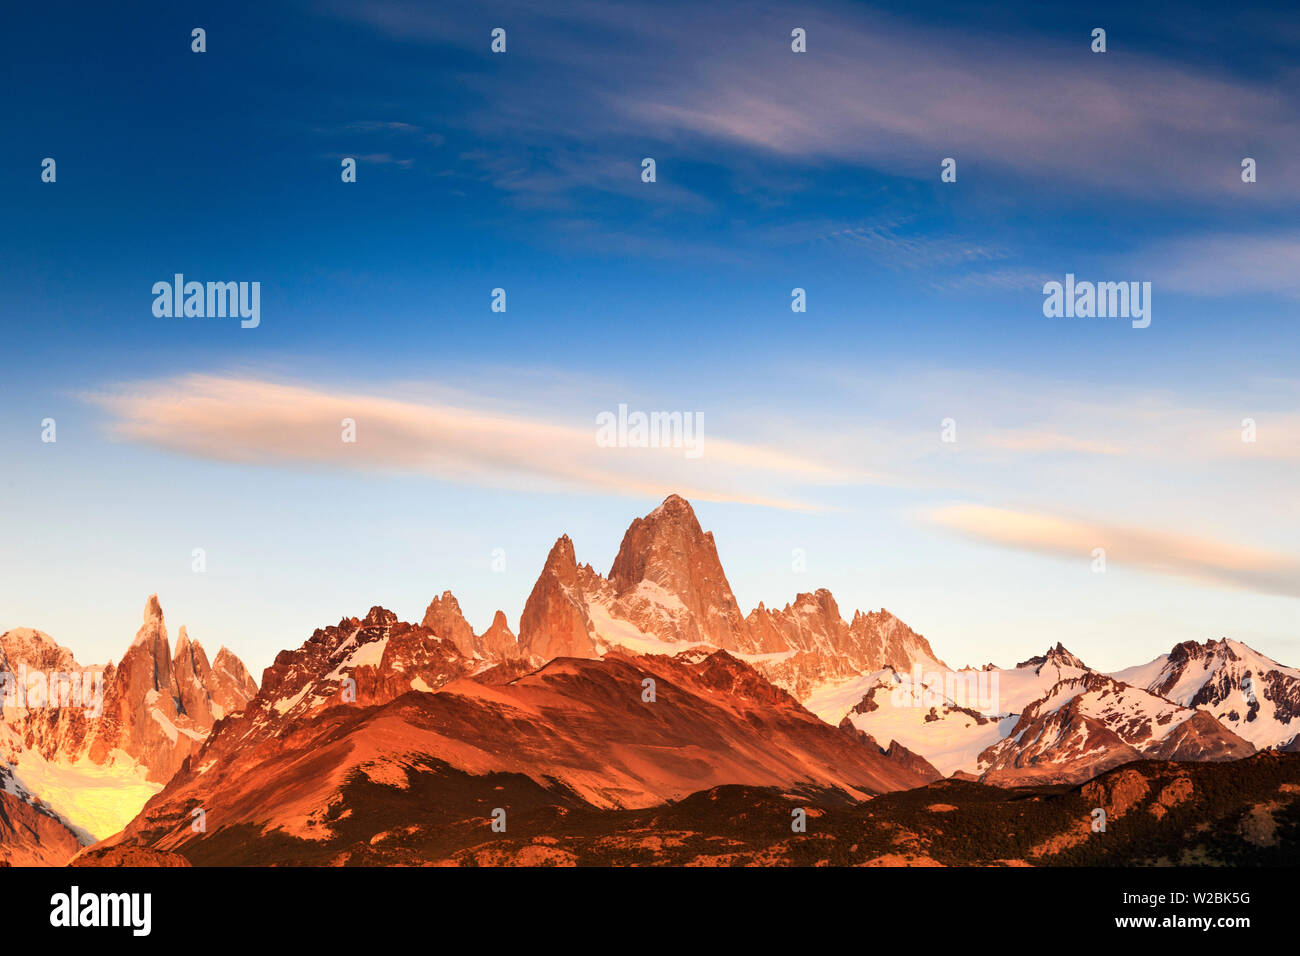 Argentina, Patagonia, El Chalten, Los Glaciares National Park, Cerro Torre and Cerro Fitzroy Peaks at the first light of dawn - Stock Image